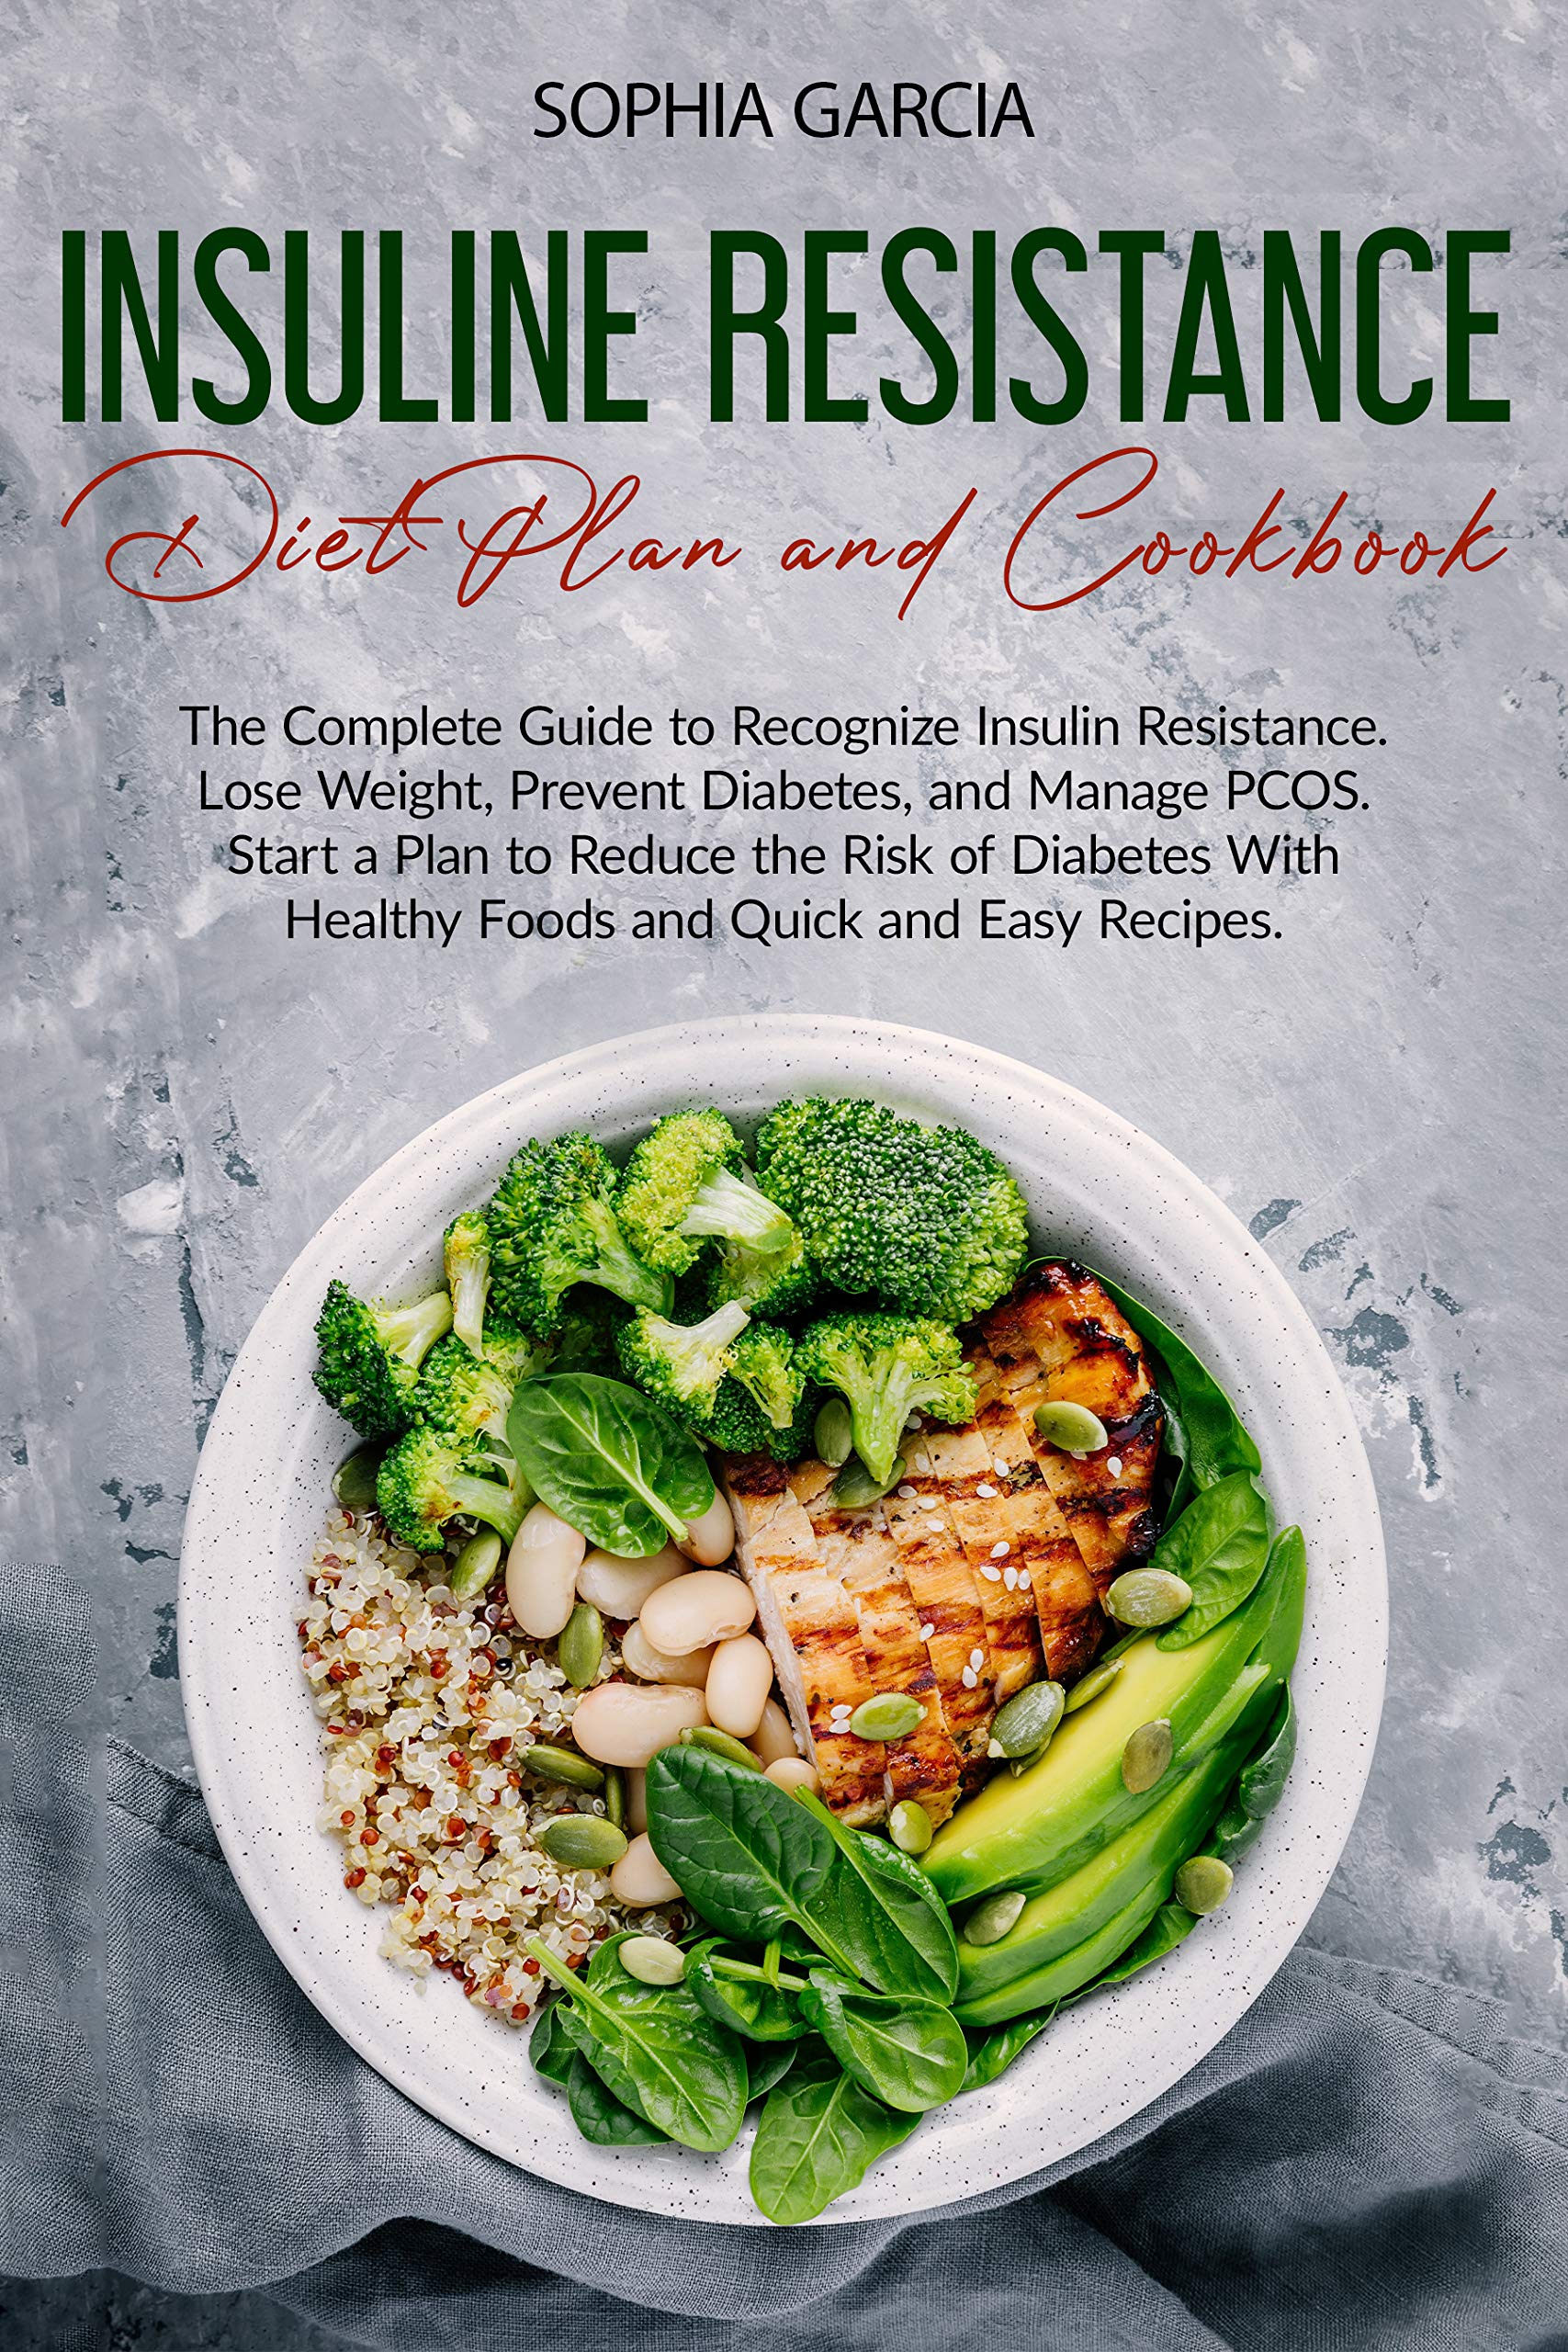 Insulin Resistance Diet Plan and Cookbook: The Complete Guide to Recognize Insulin Resistance Lose Weight, Prevent Diabetes, and Manage PCOS Start a Plan to Reduce the Risk of Diabetes With Healthy F